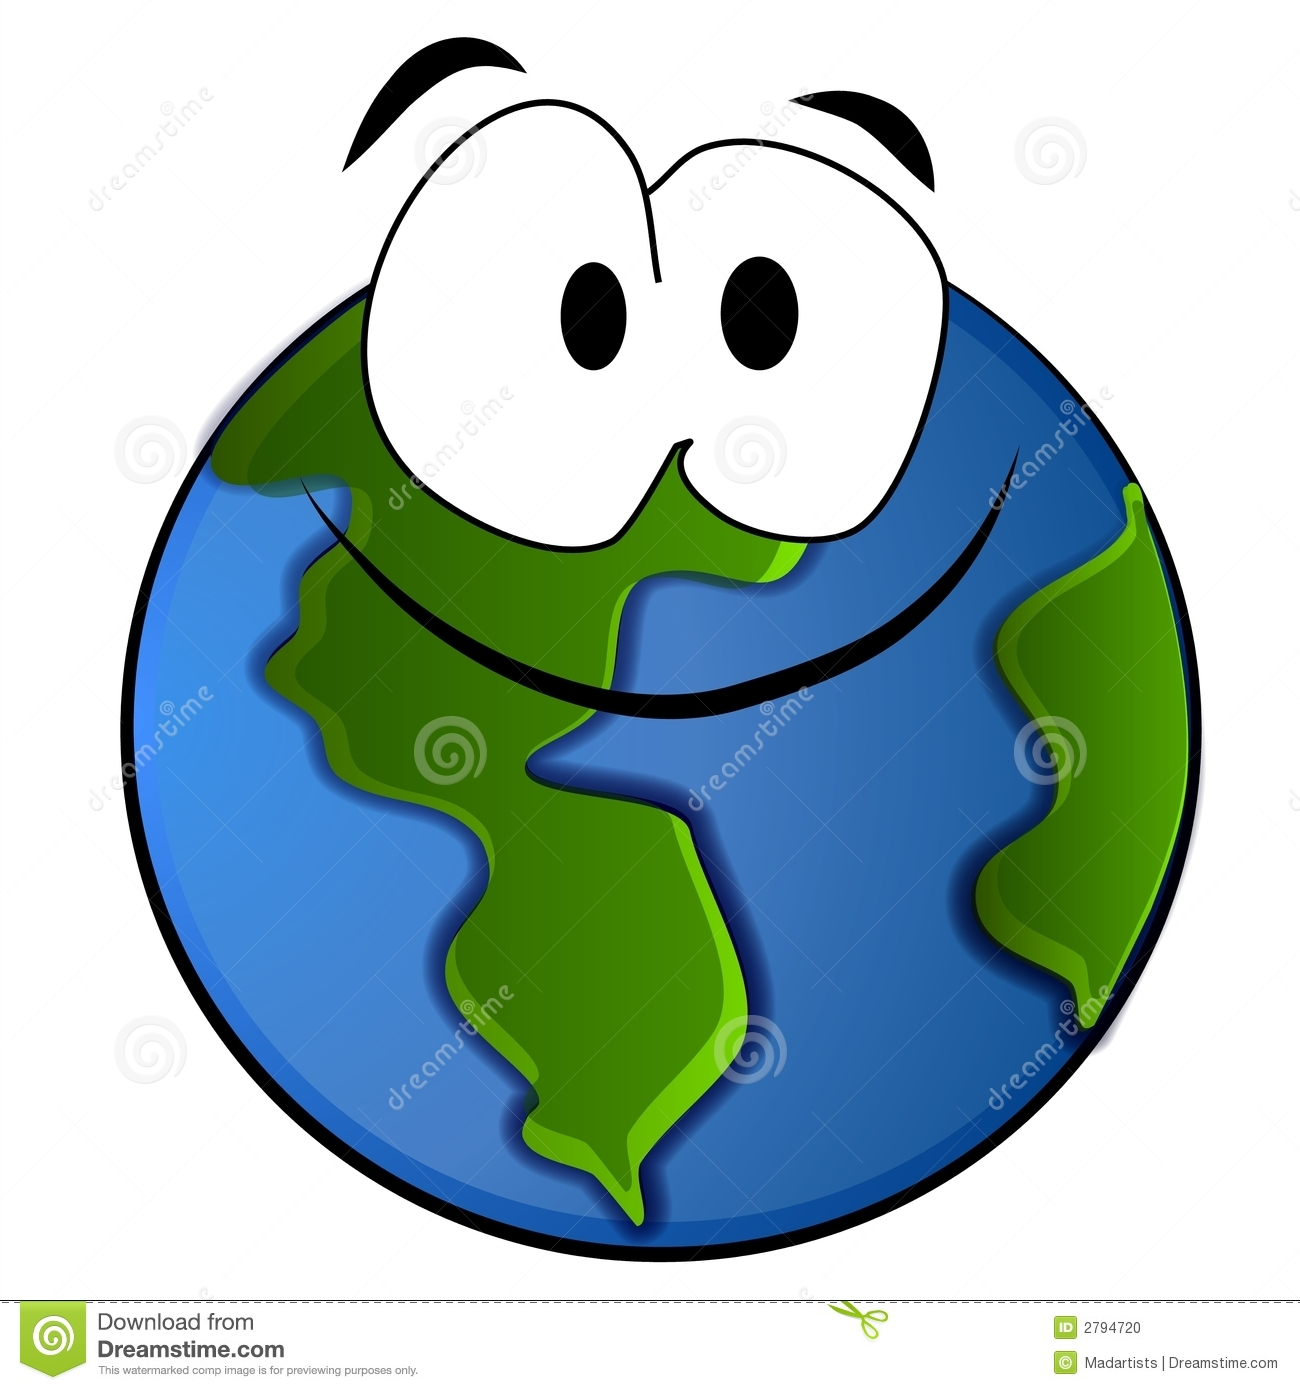 earth clipart animation - photo #28